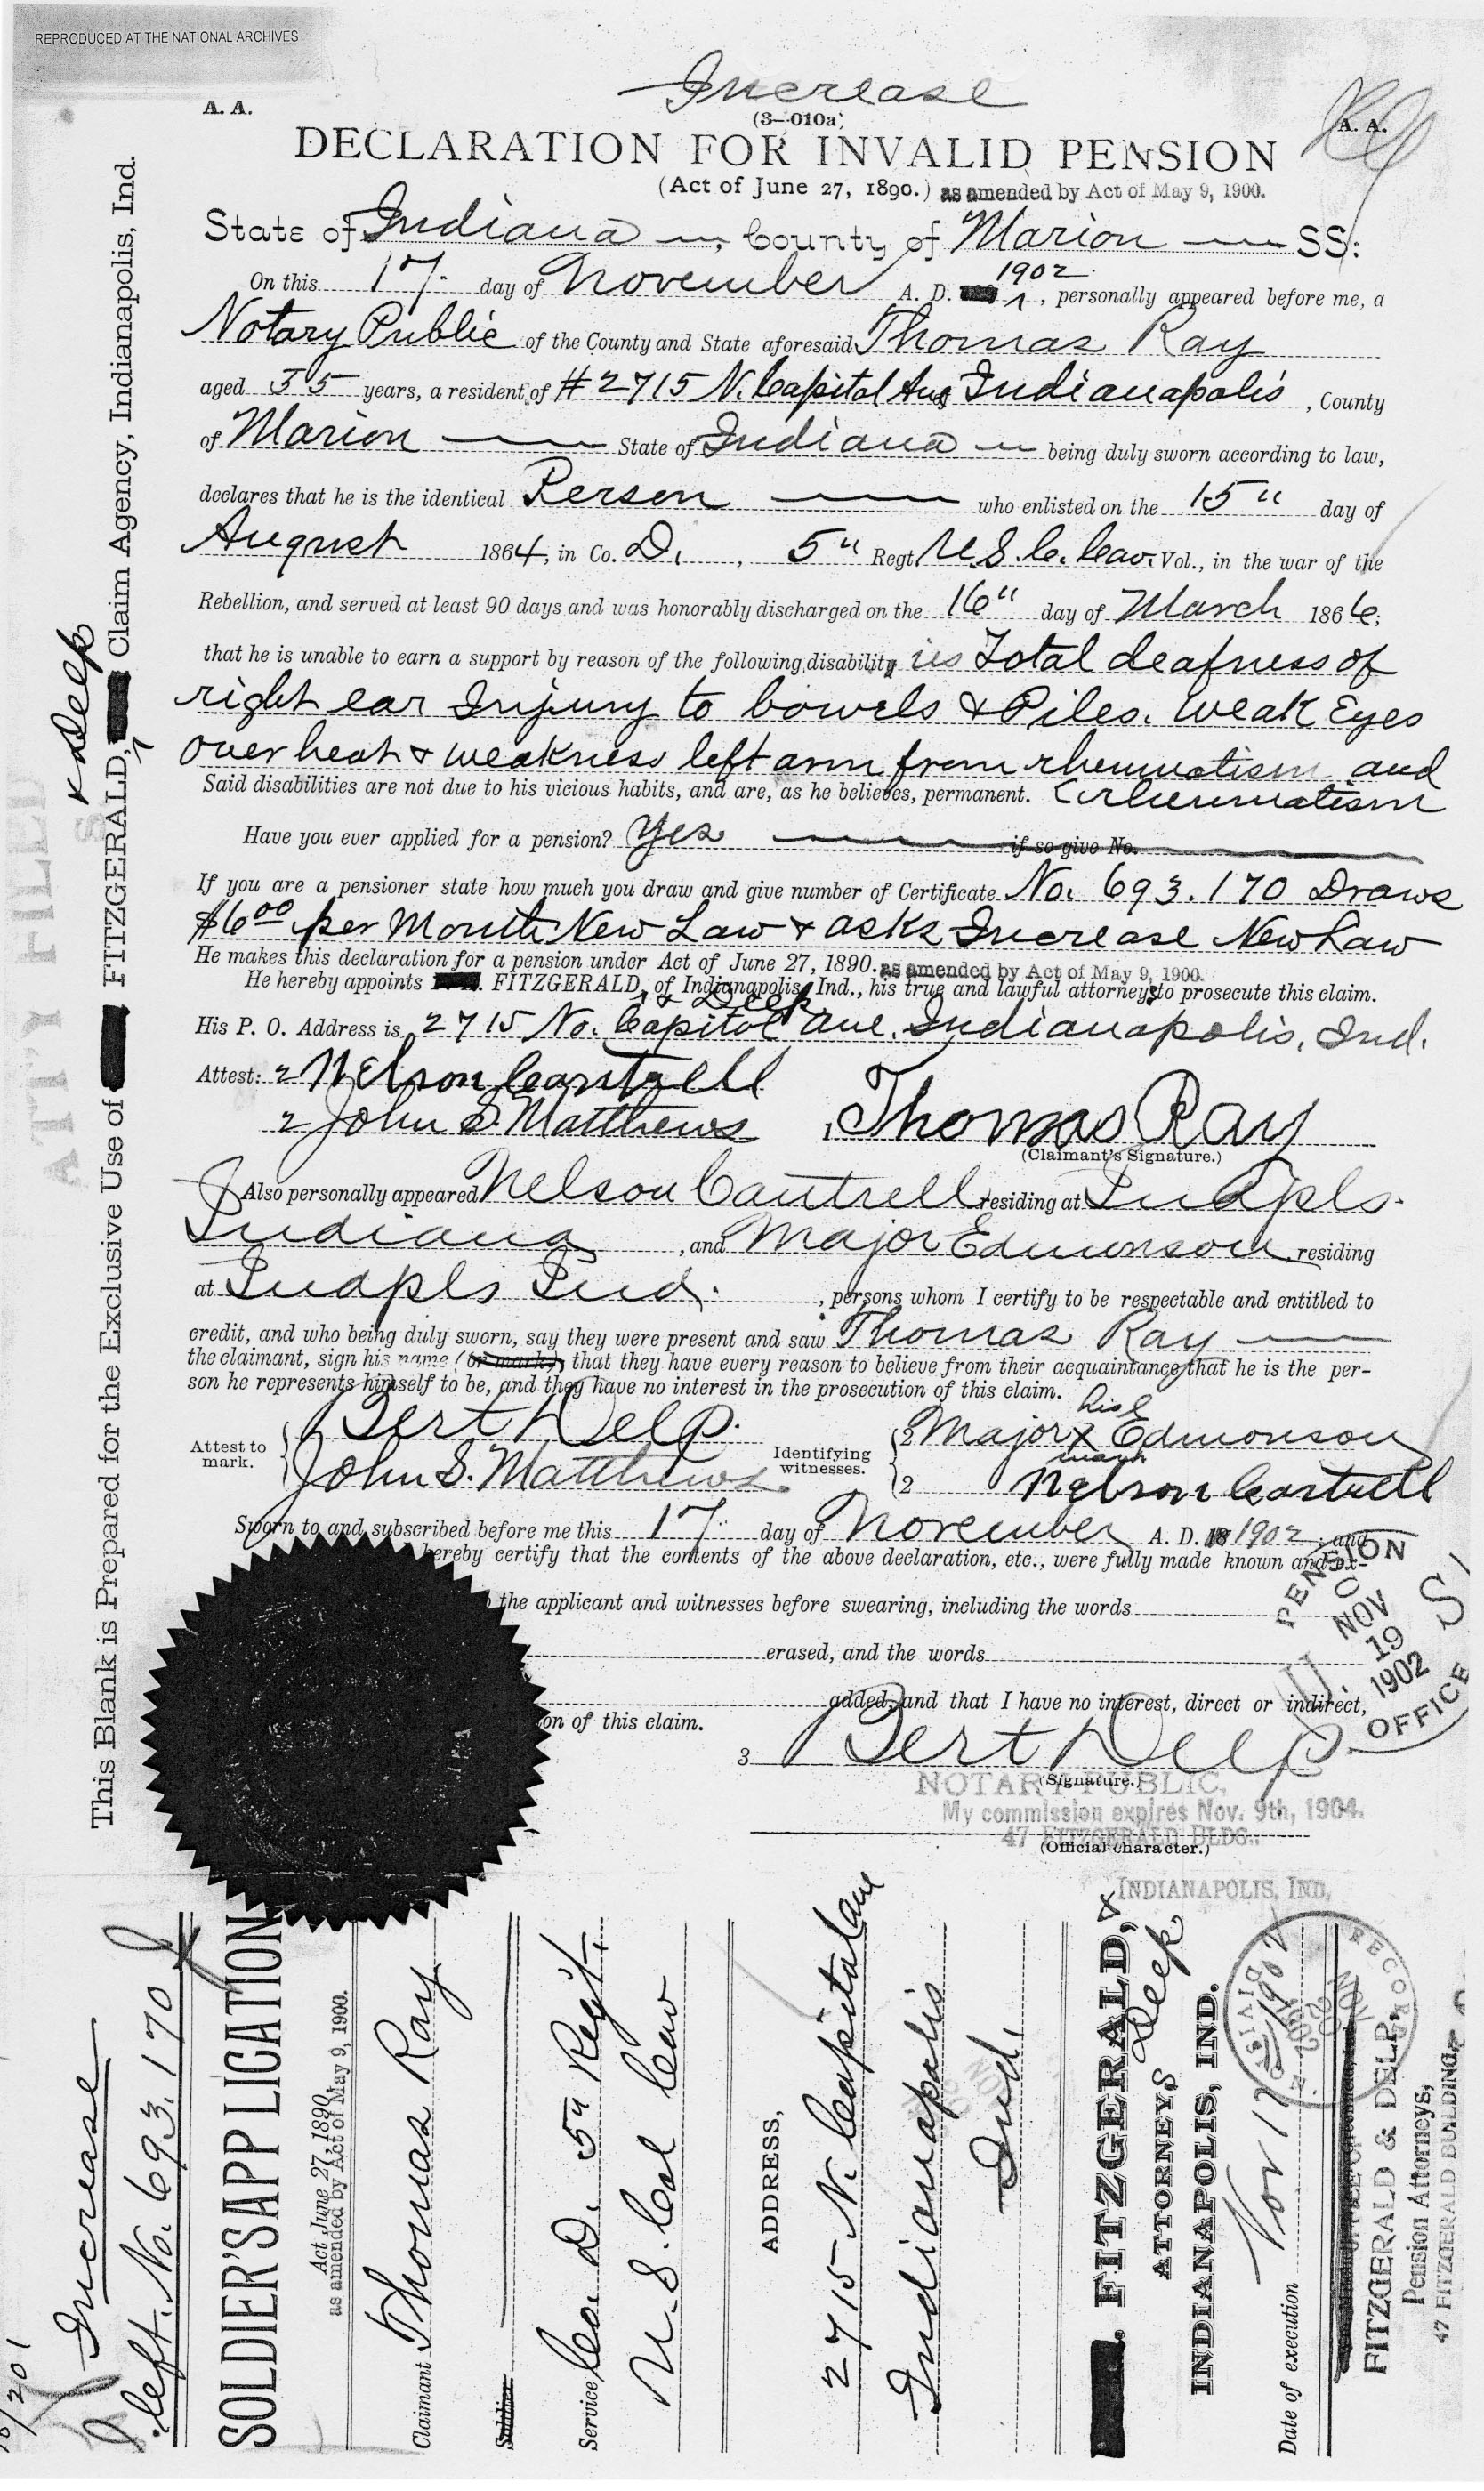 major edmundson gave testimony finding eliza the earliest that i found major edmondson in a record was his 1884 marriage license on 8 1884 he married lucy elms in manhattan new york